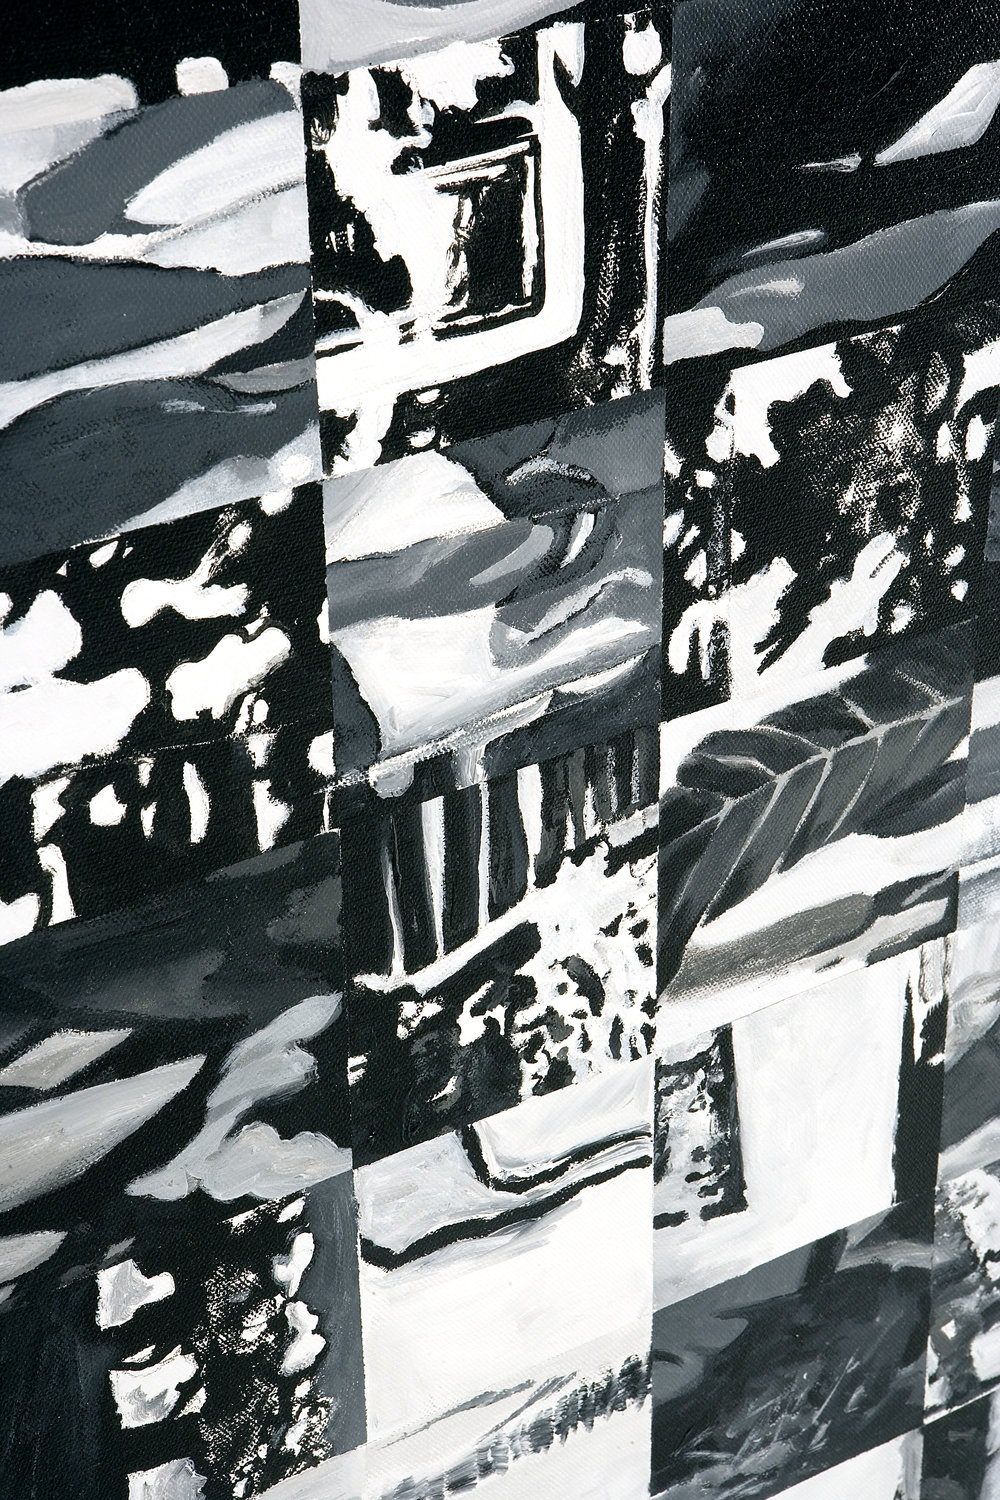 Nwe Herengracht, acryl on canvas, 2000, detail